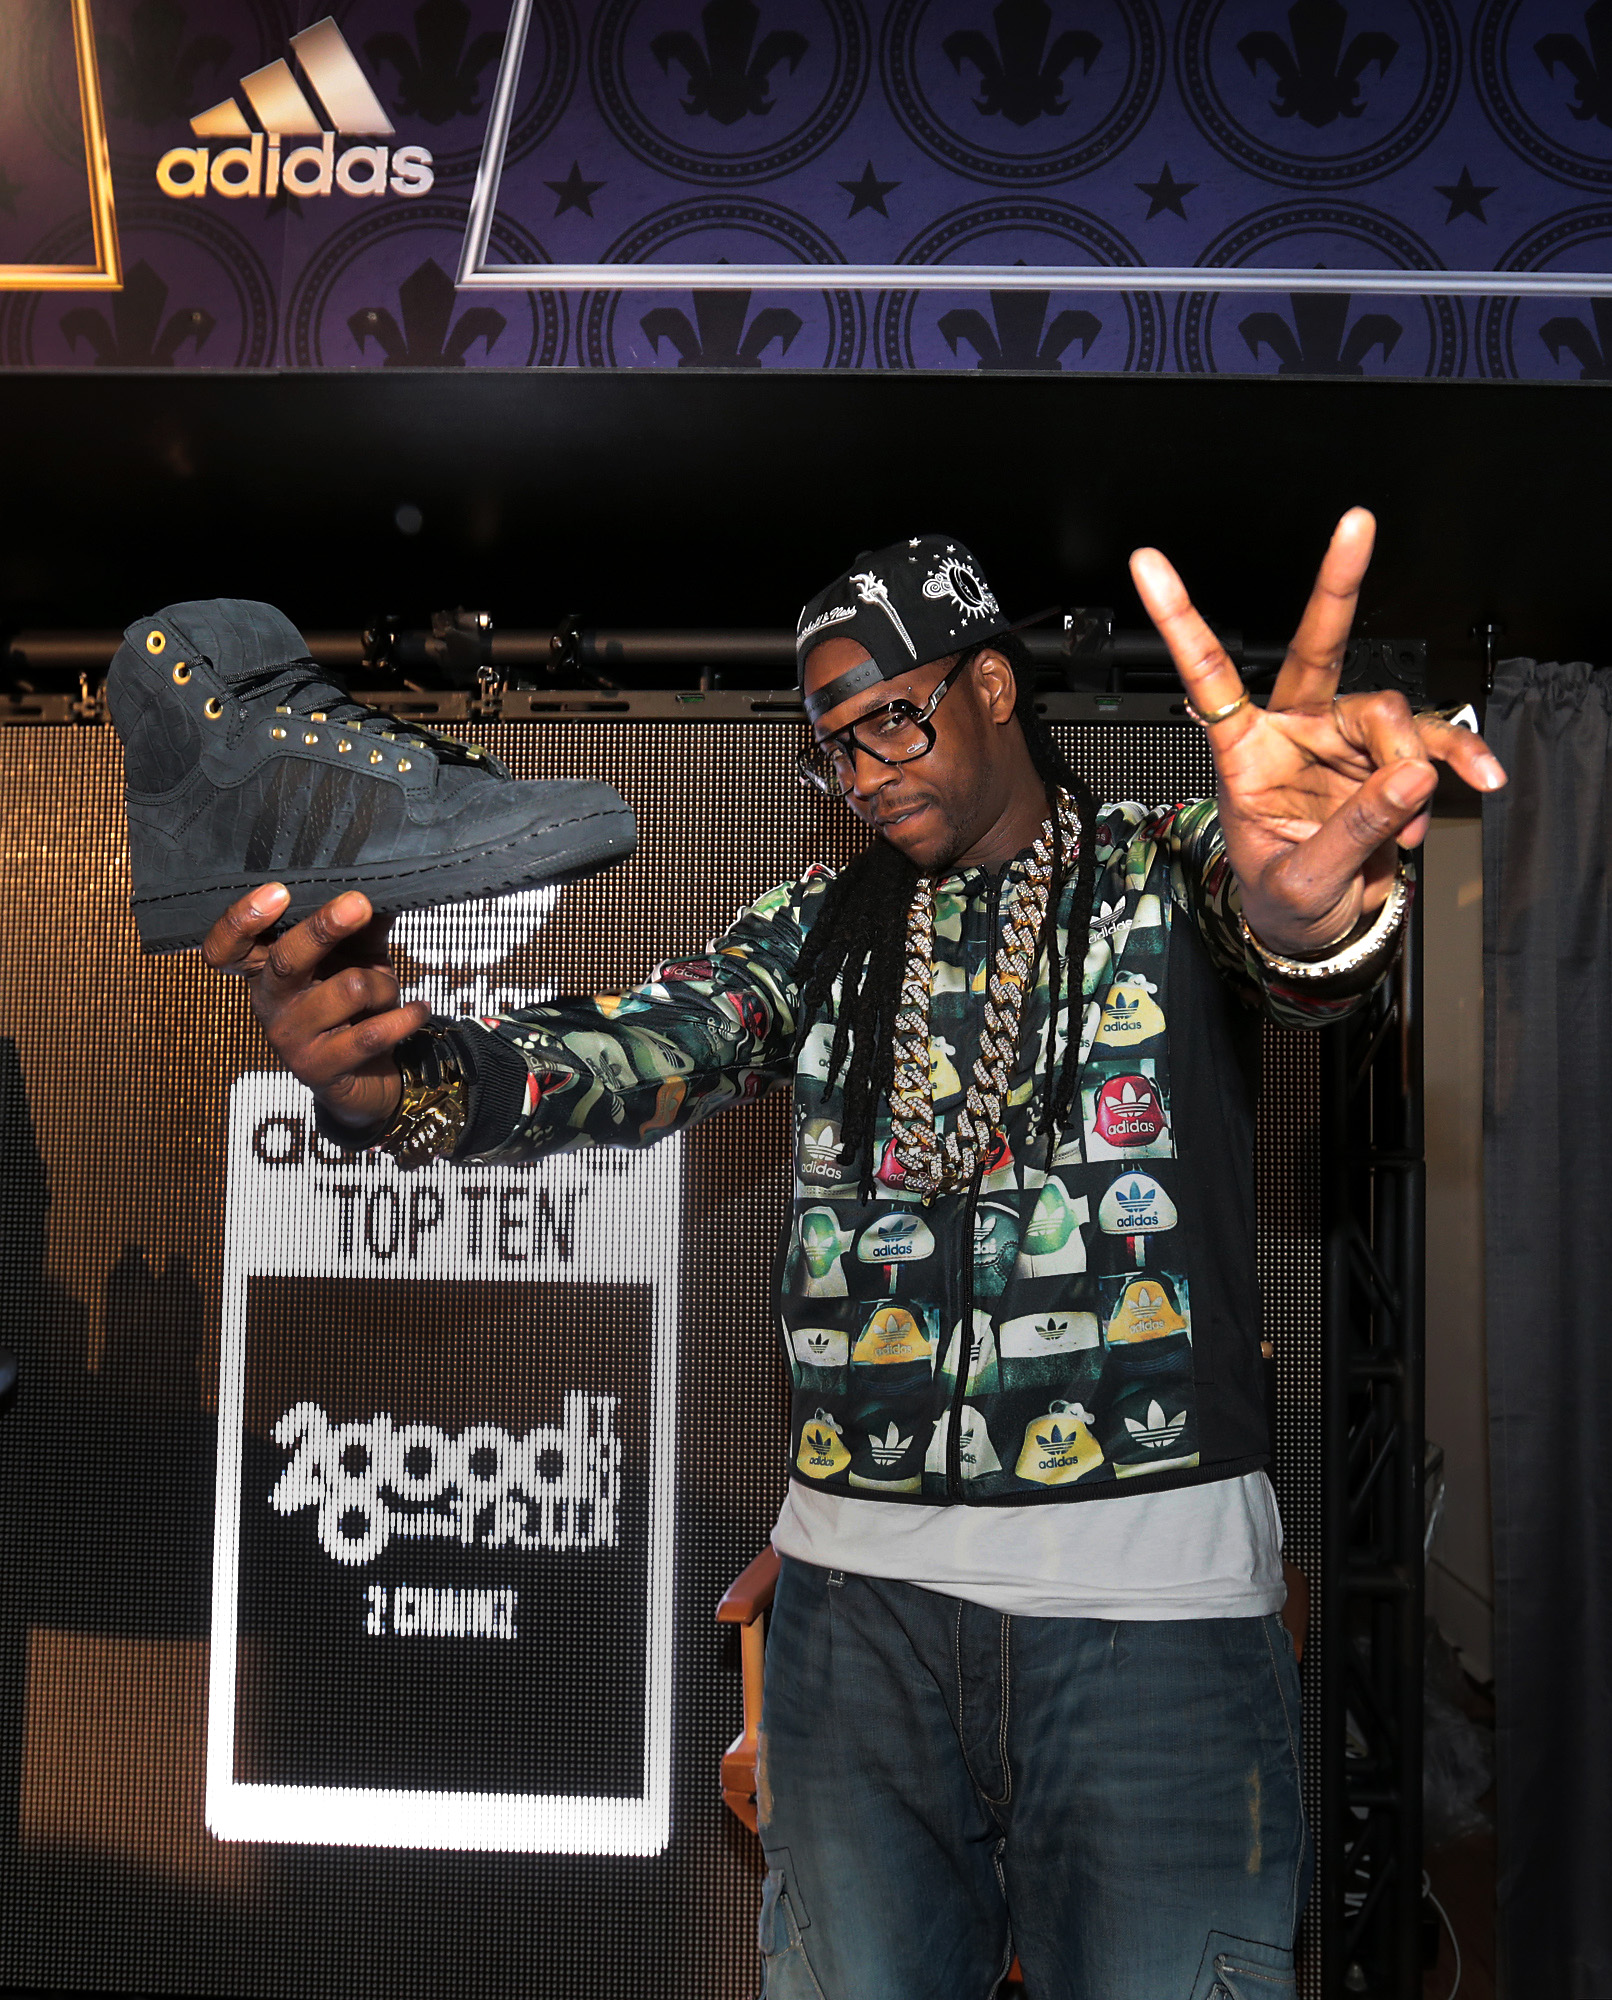 watch f211d 6aa2e ... 2014 adidas in the Quarter 2014 adidas in the Quarter. 2 Chainz ...